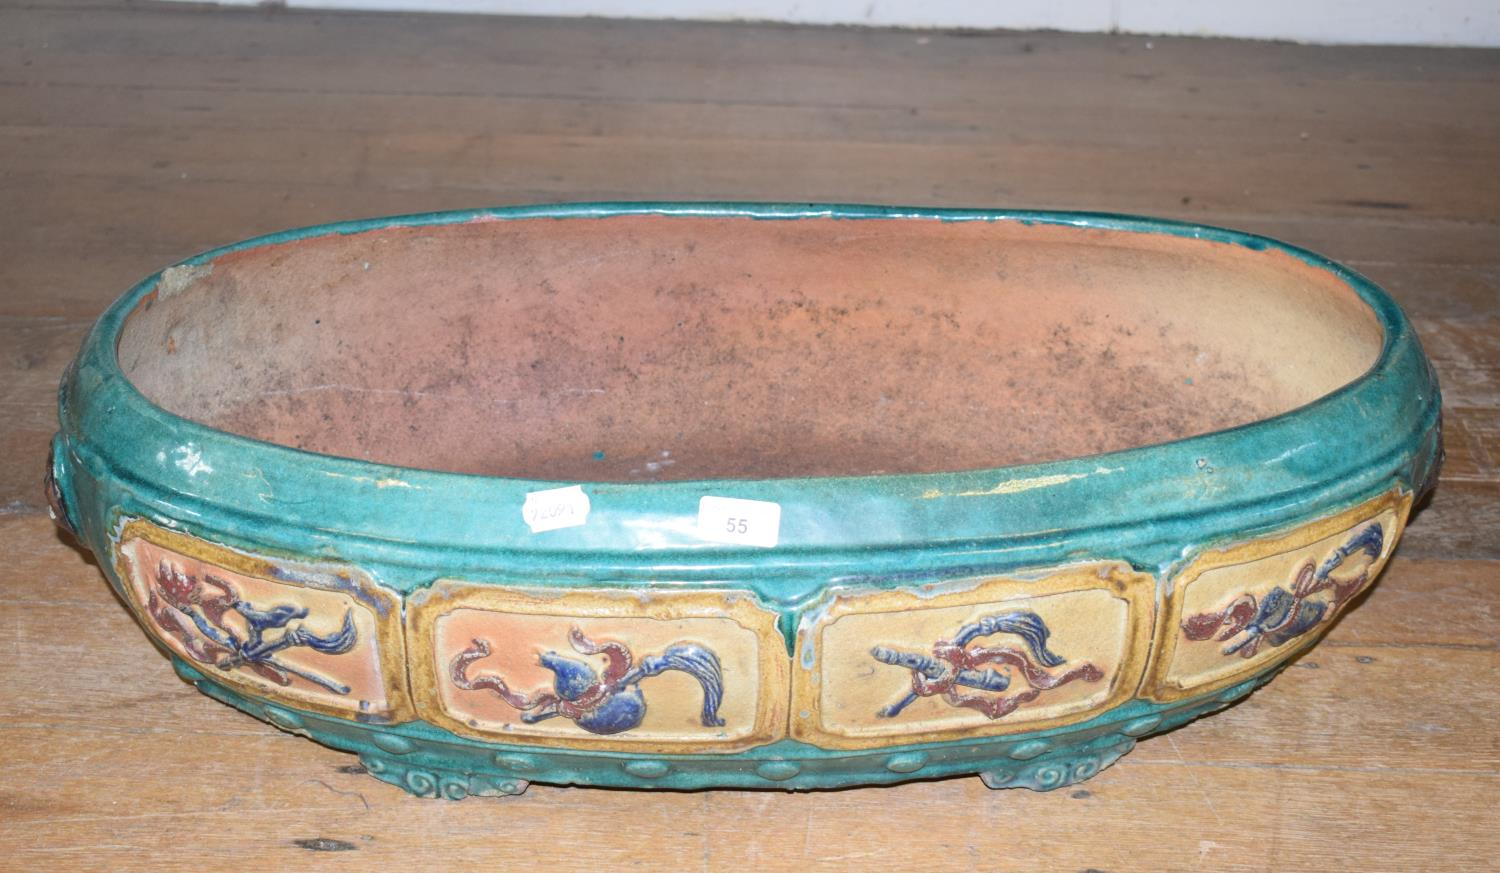 Lot 55 - A Chinese earthenware jardiniere, of rounded rectangular form, decorated various motifs, 78 cm